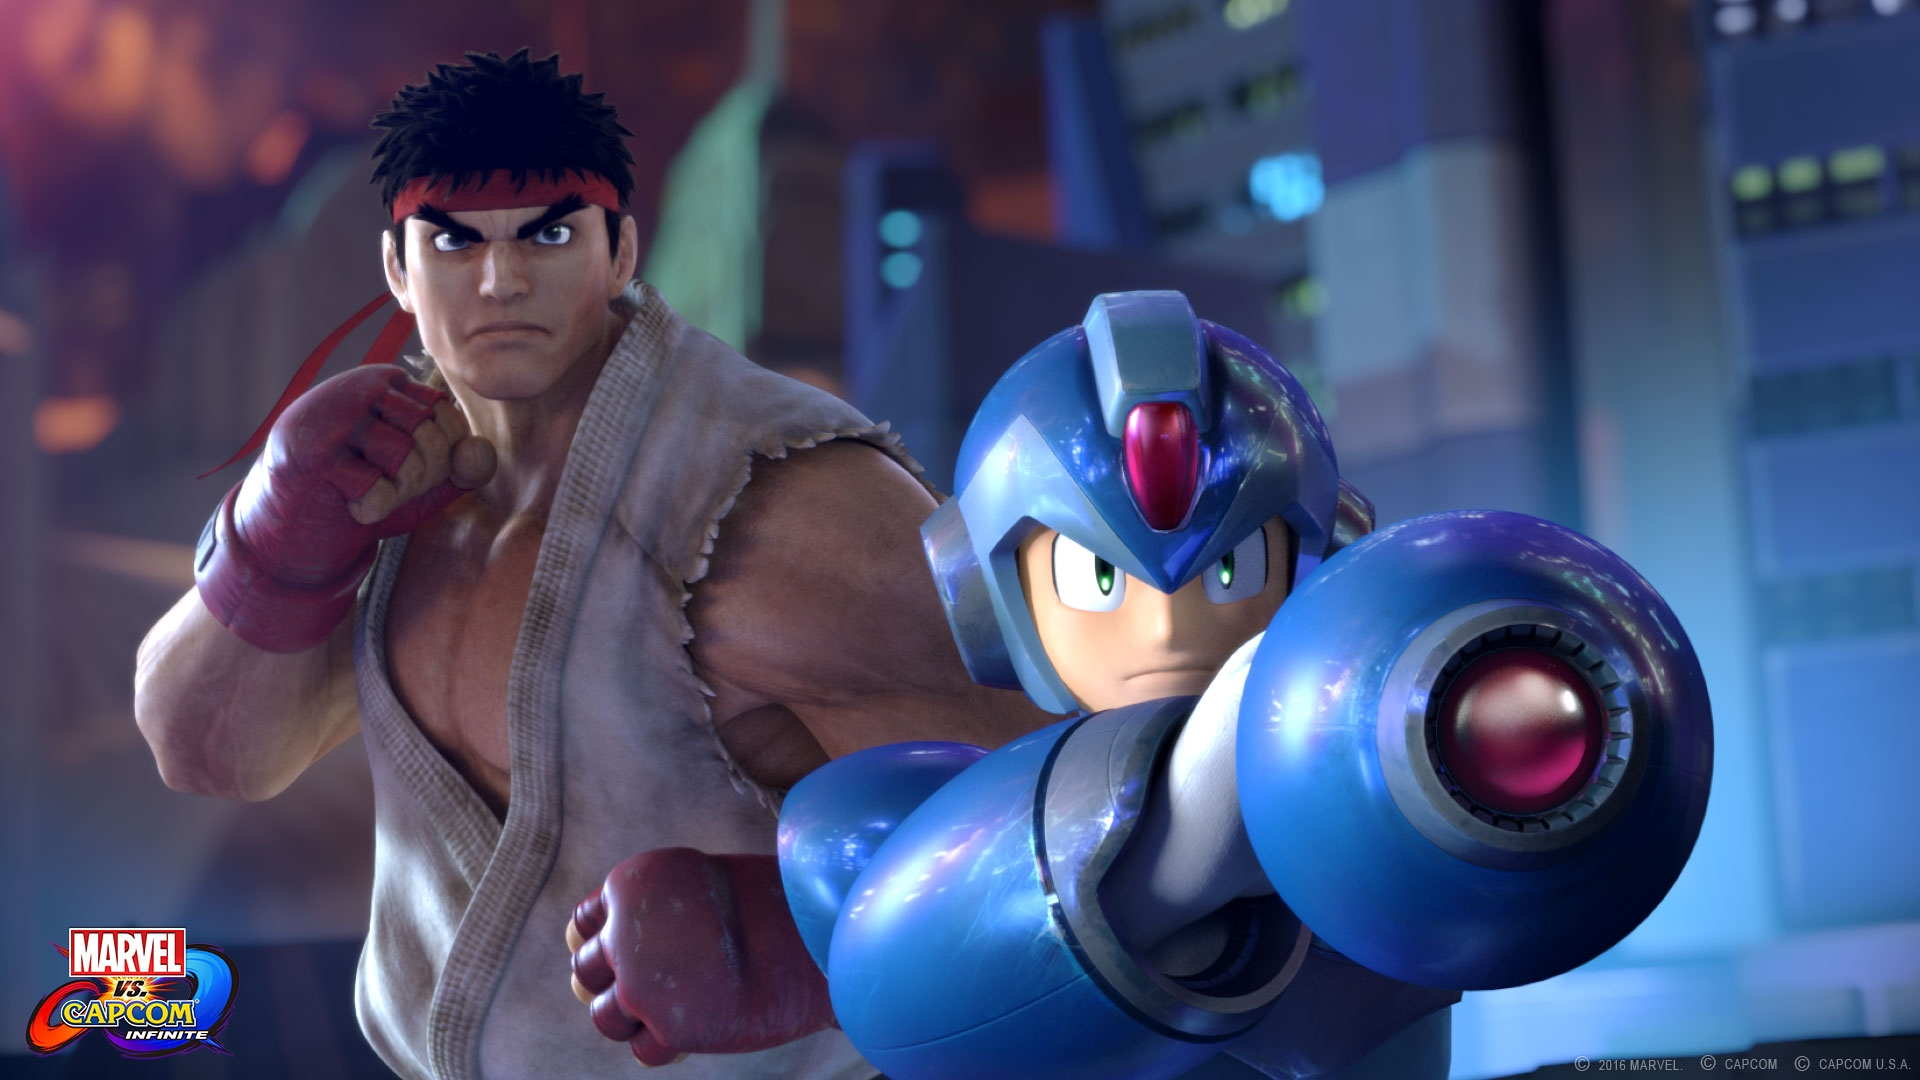 Seriously, it's just a bit weird to see mostly realistic human Ryu with kinda-creepy Megaman.